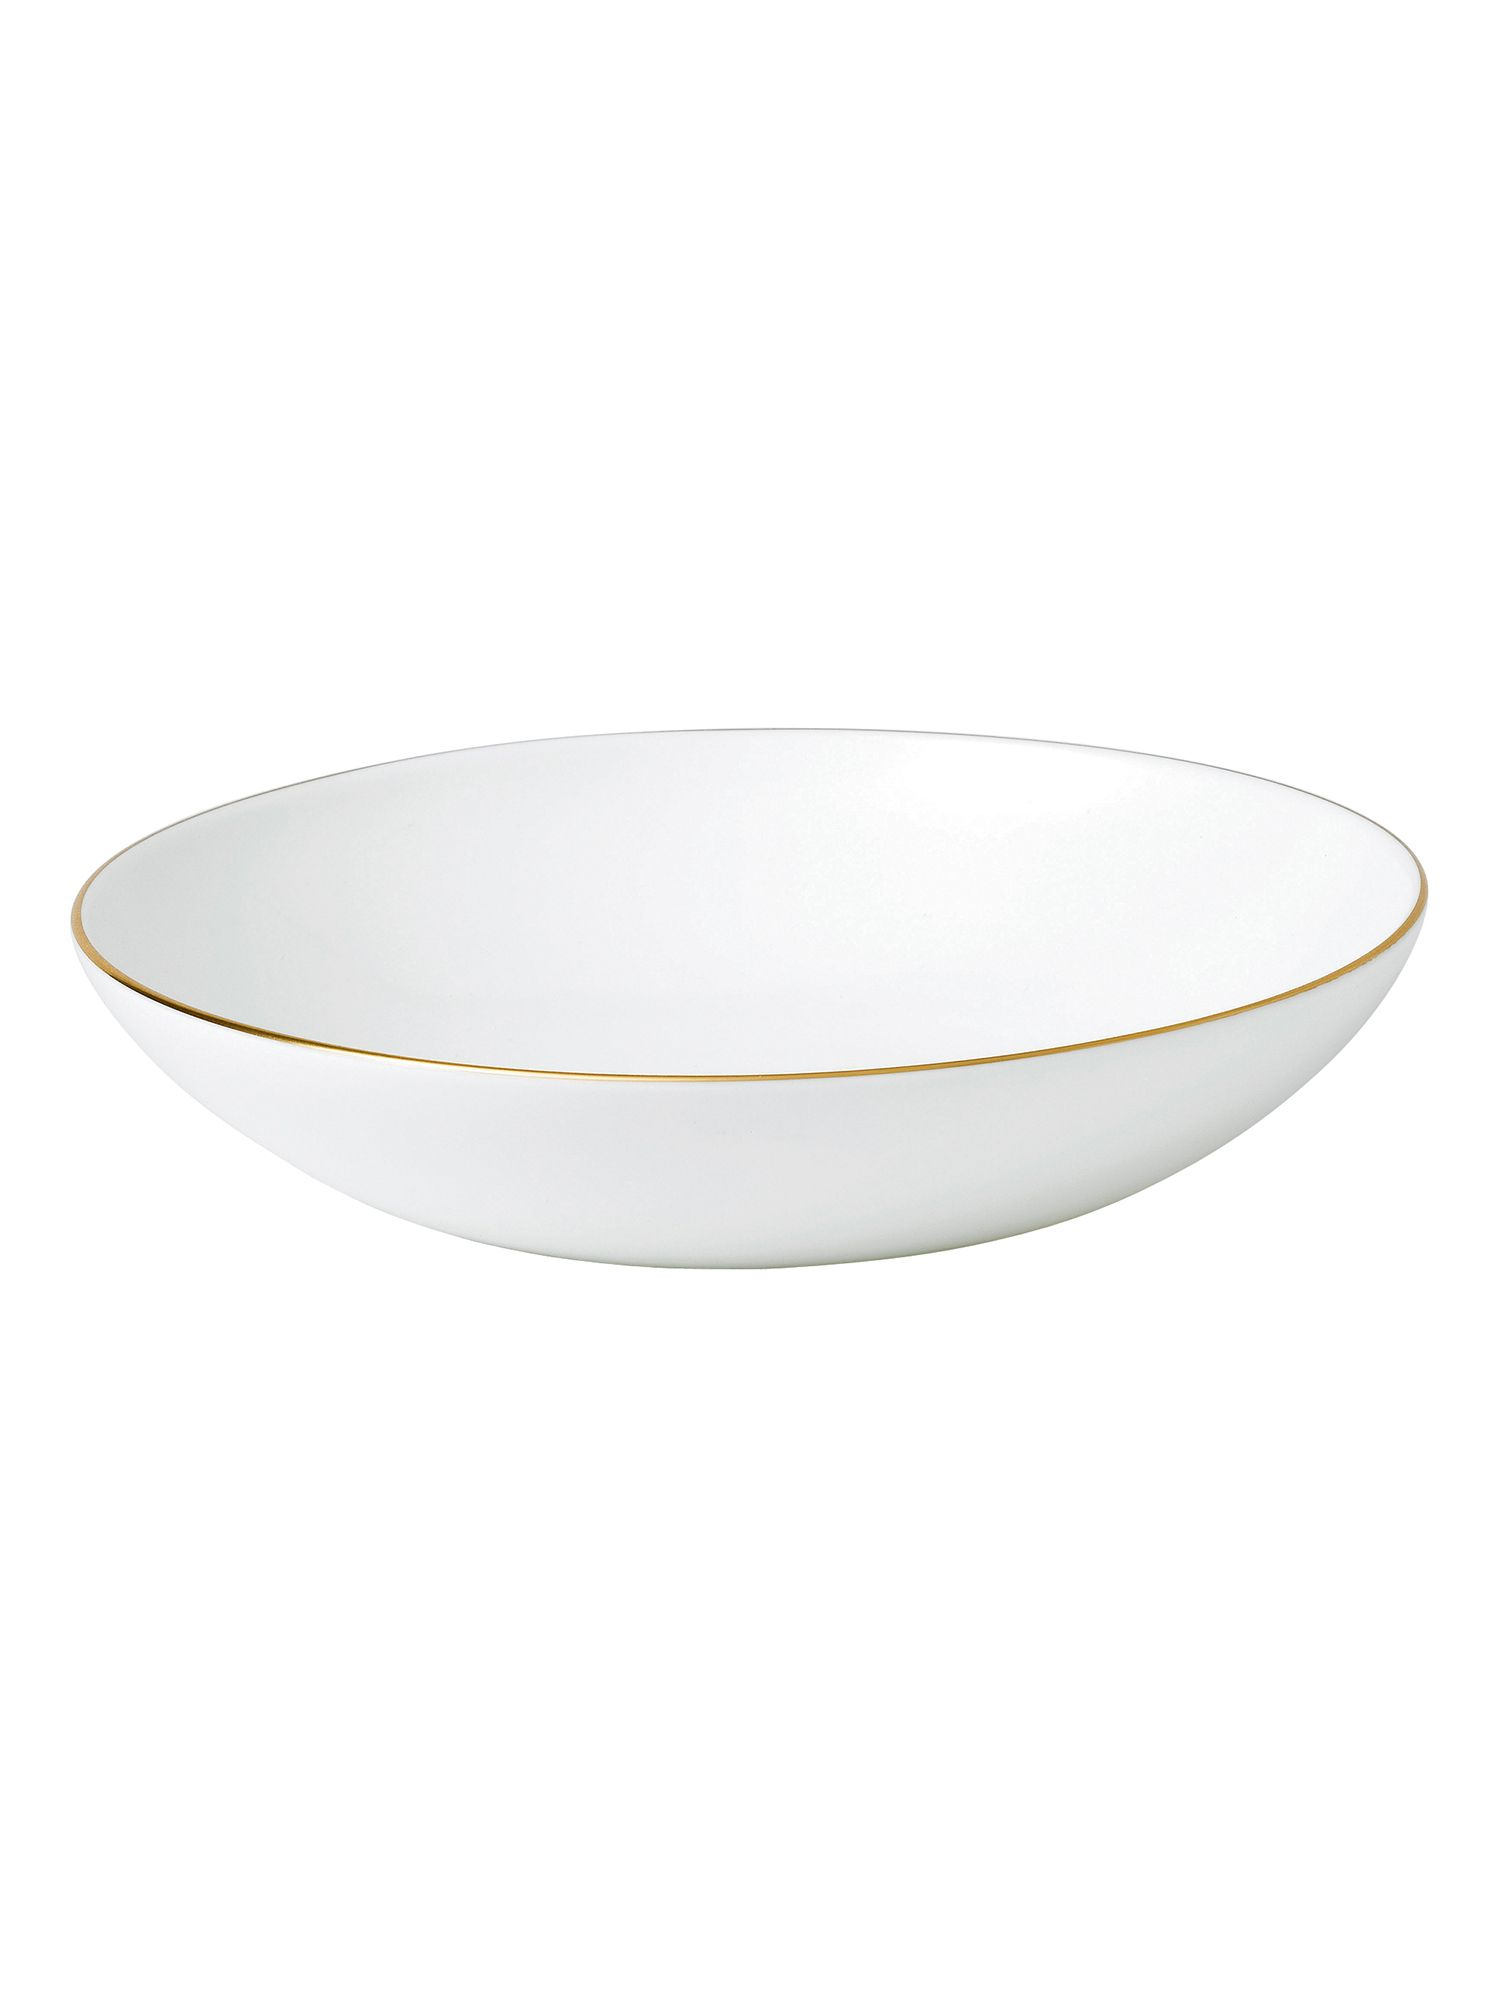 Jasper conran bone china gold tipped pasta bowl 2